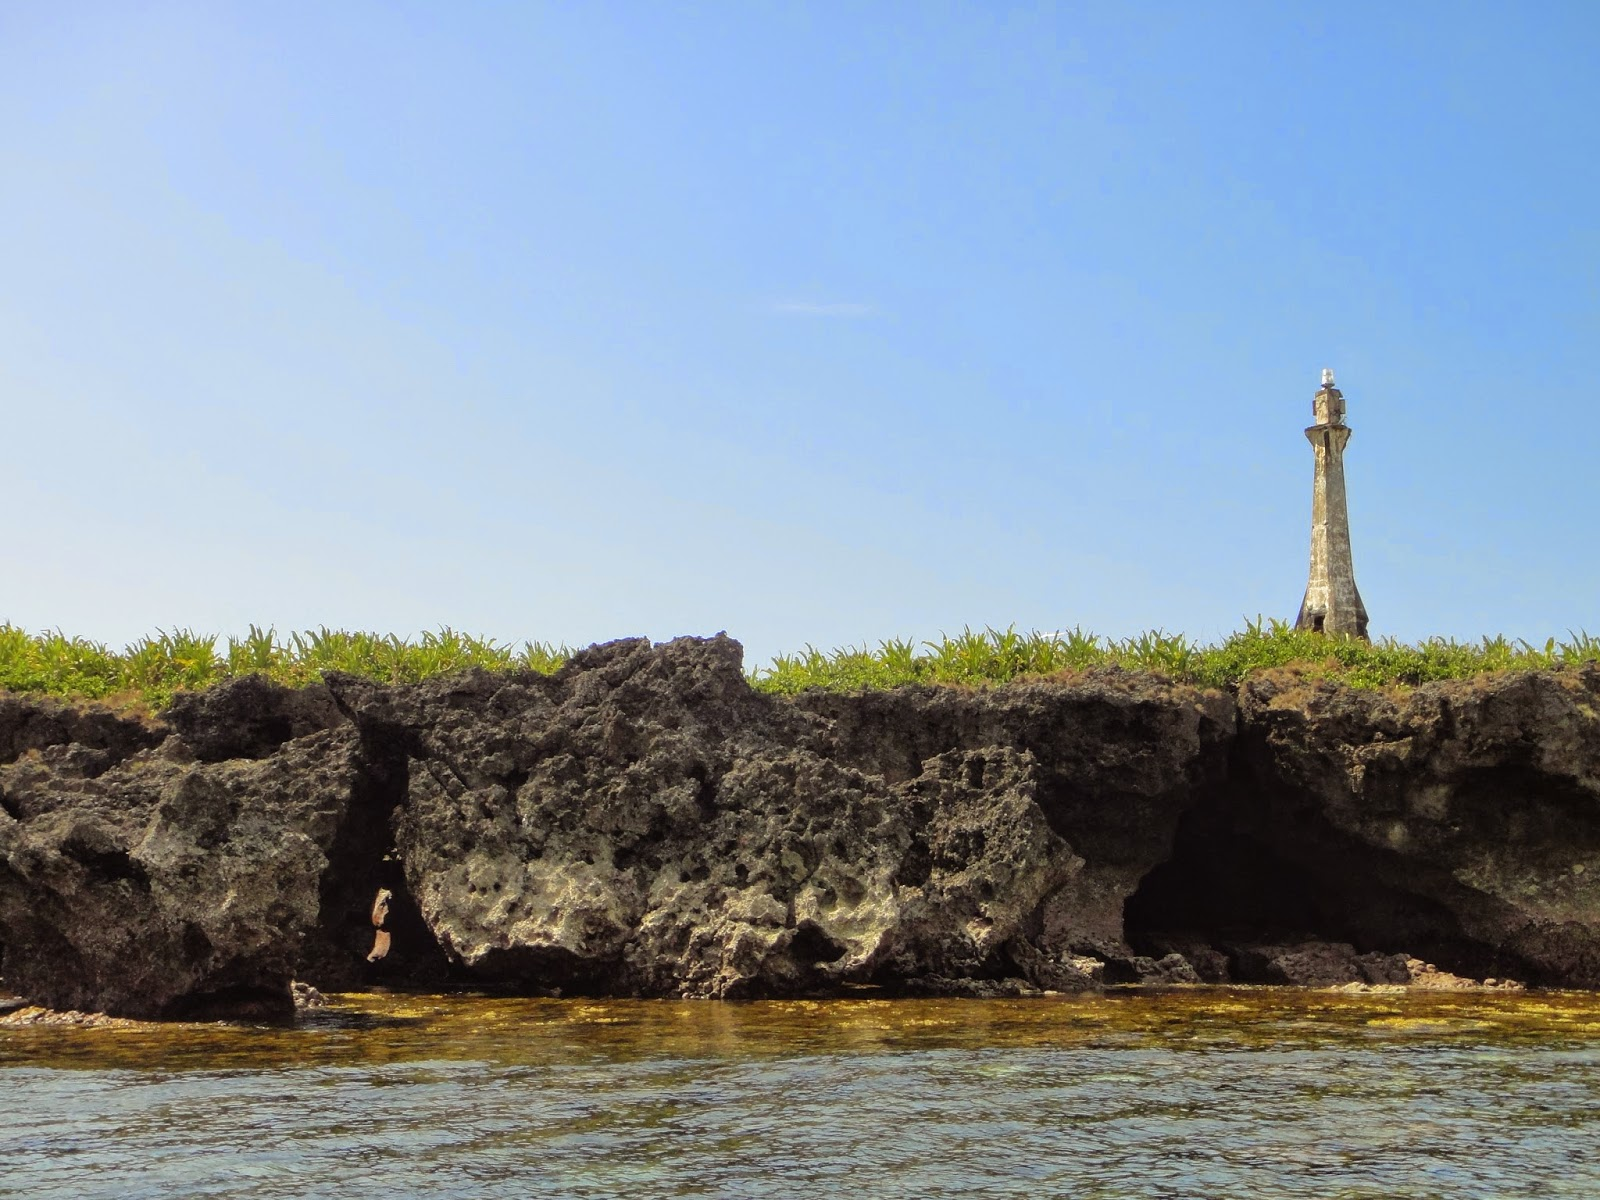 The old lighthouse on Baliscar Island